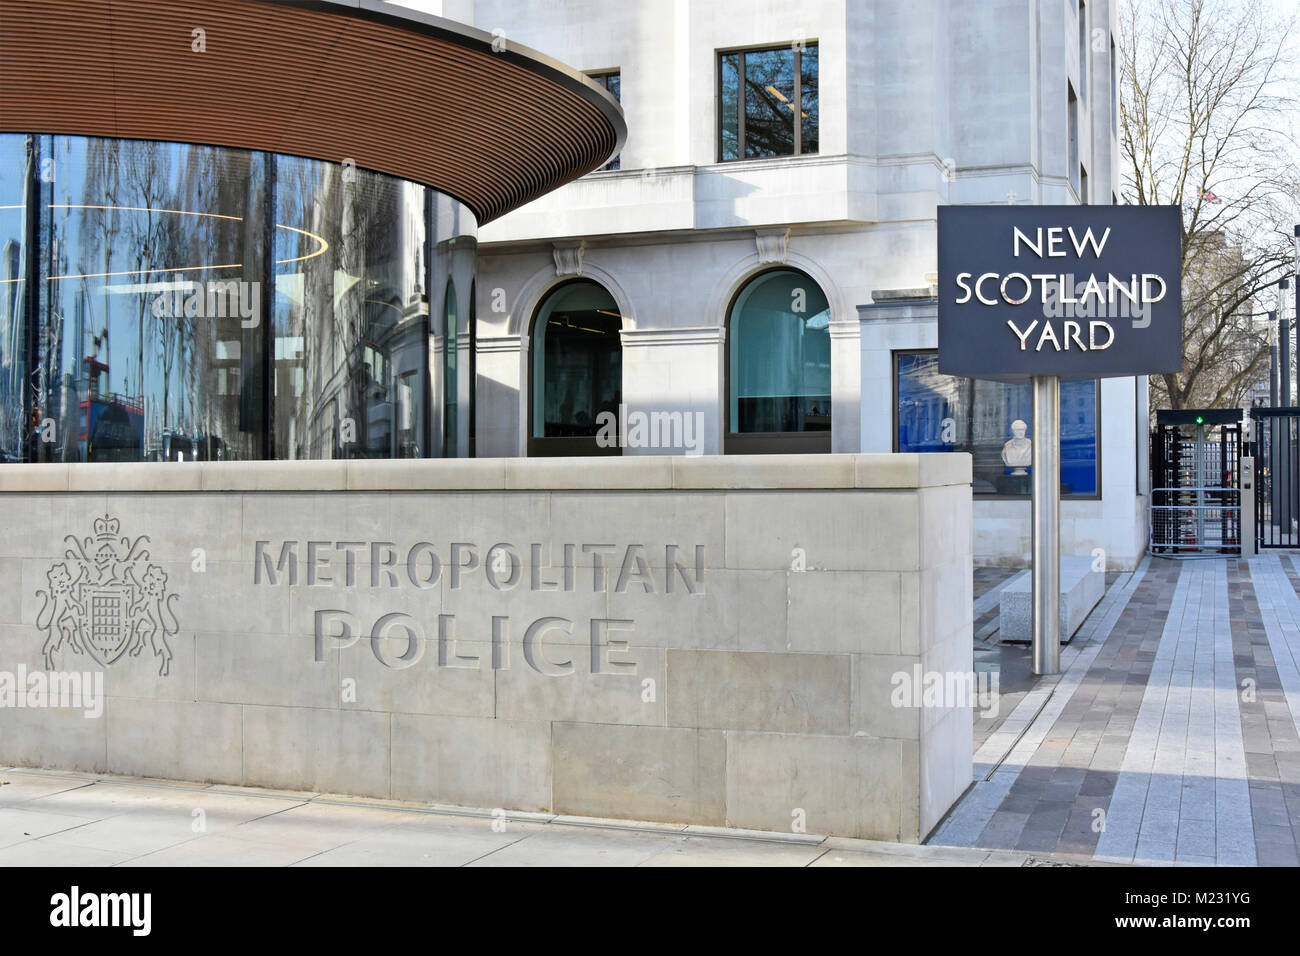 Metropolitan Police Sign U0026 Coat Of Arms Engraved On Stone Wall At New  Scotland Yard Revolving Sign Outside Relocated HQ Victoria Embankment  London UK